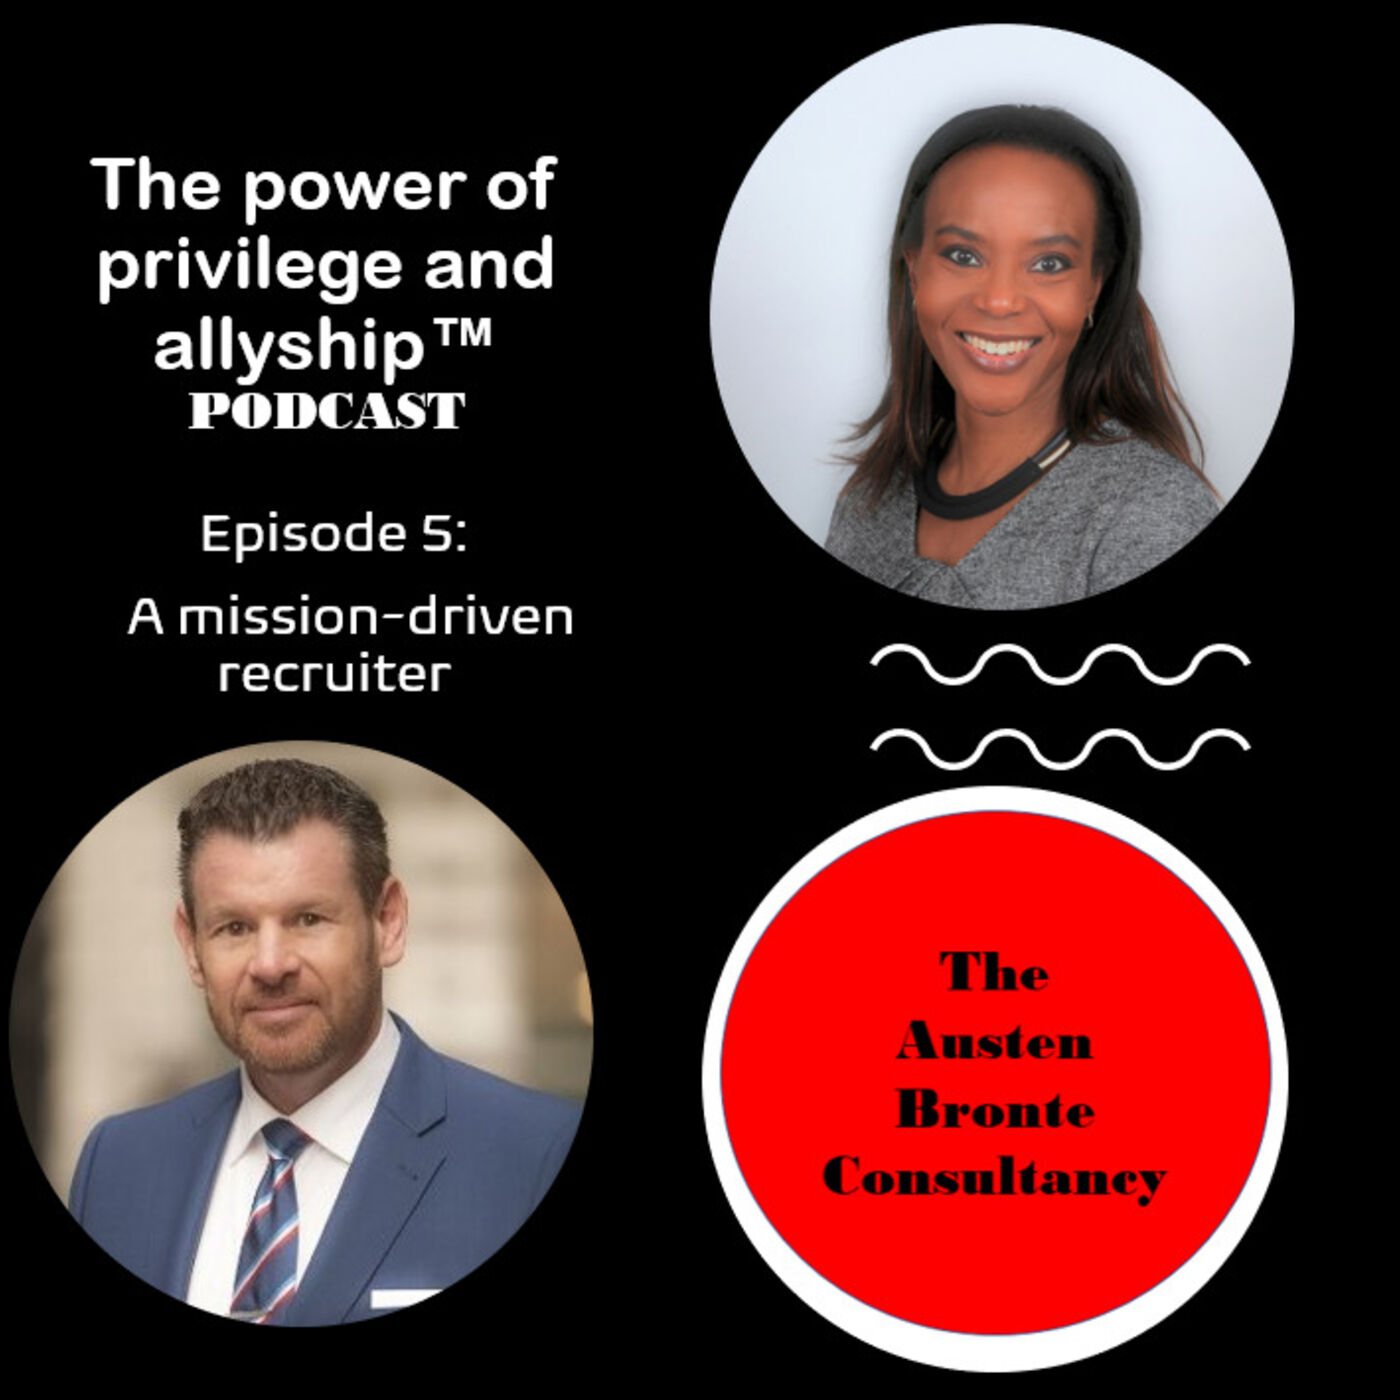 S1 Ep 5: A mission-driven recruiter feat. Richard Pickard